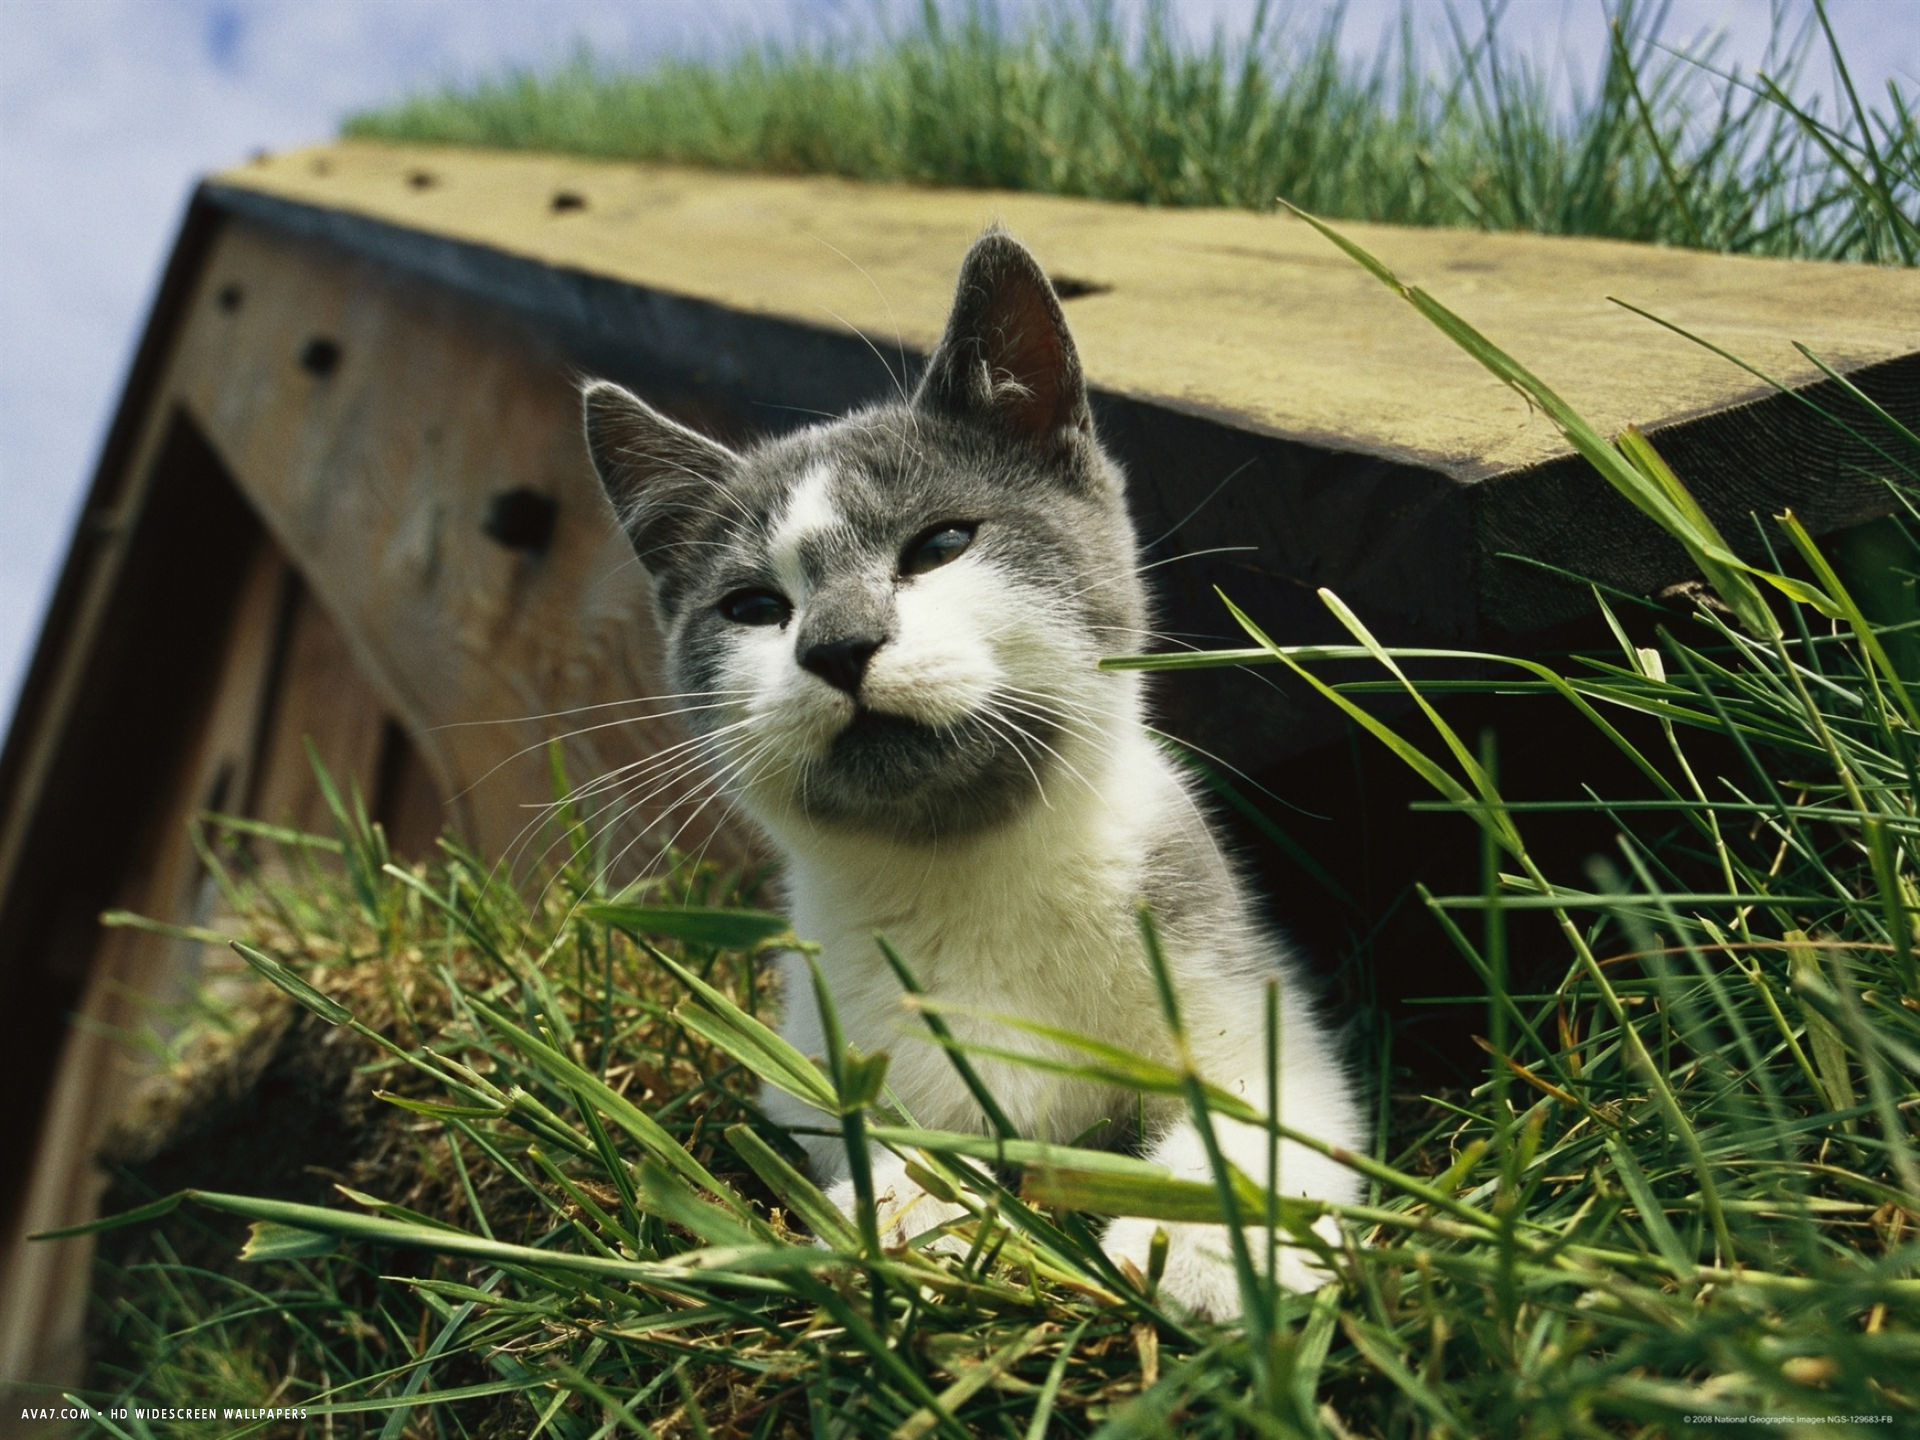 a cat perches on a sod covered roof